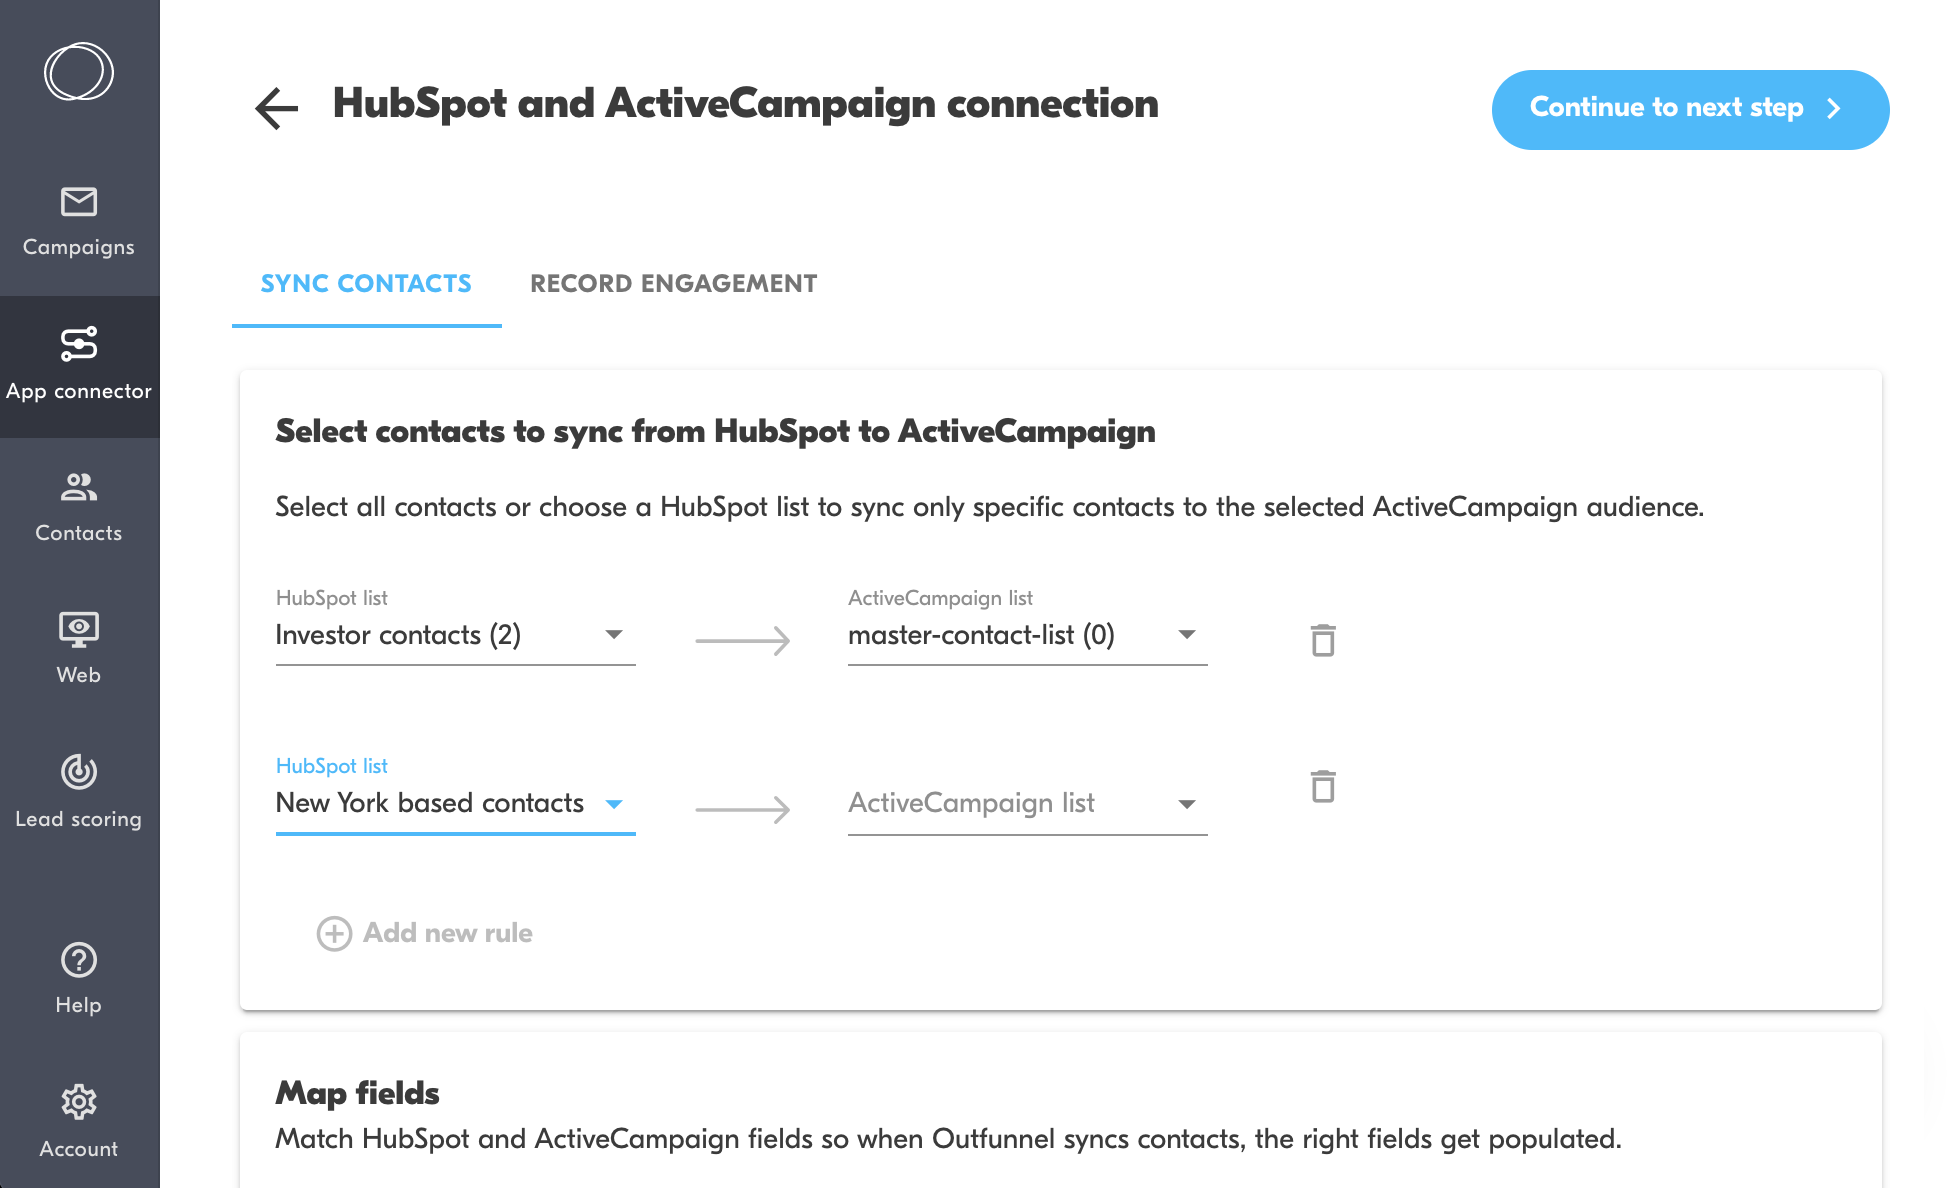 sync contacts from hubspot crm to activecampaign lists